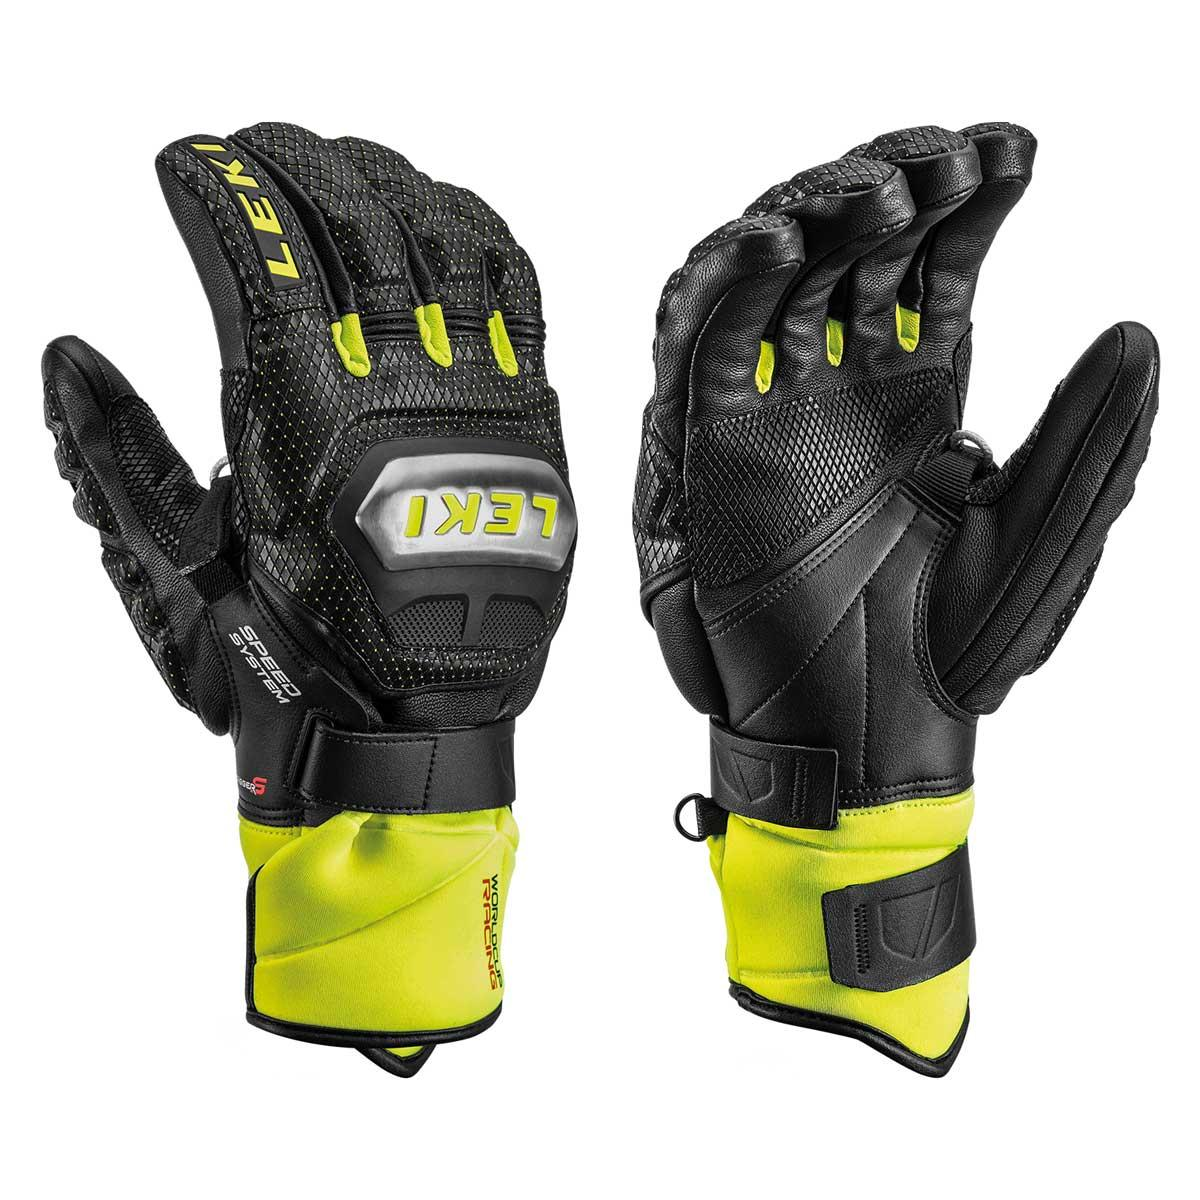 Leki Worldcup Race Ti S Speed System Glove in black and lemon